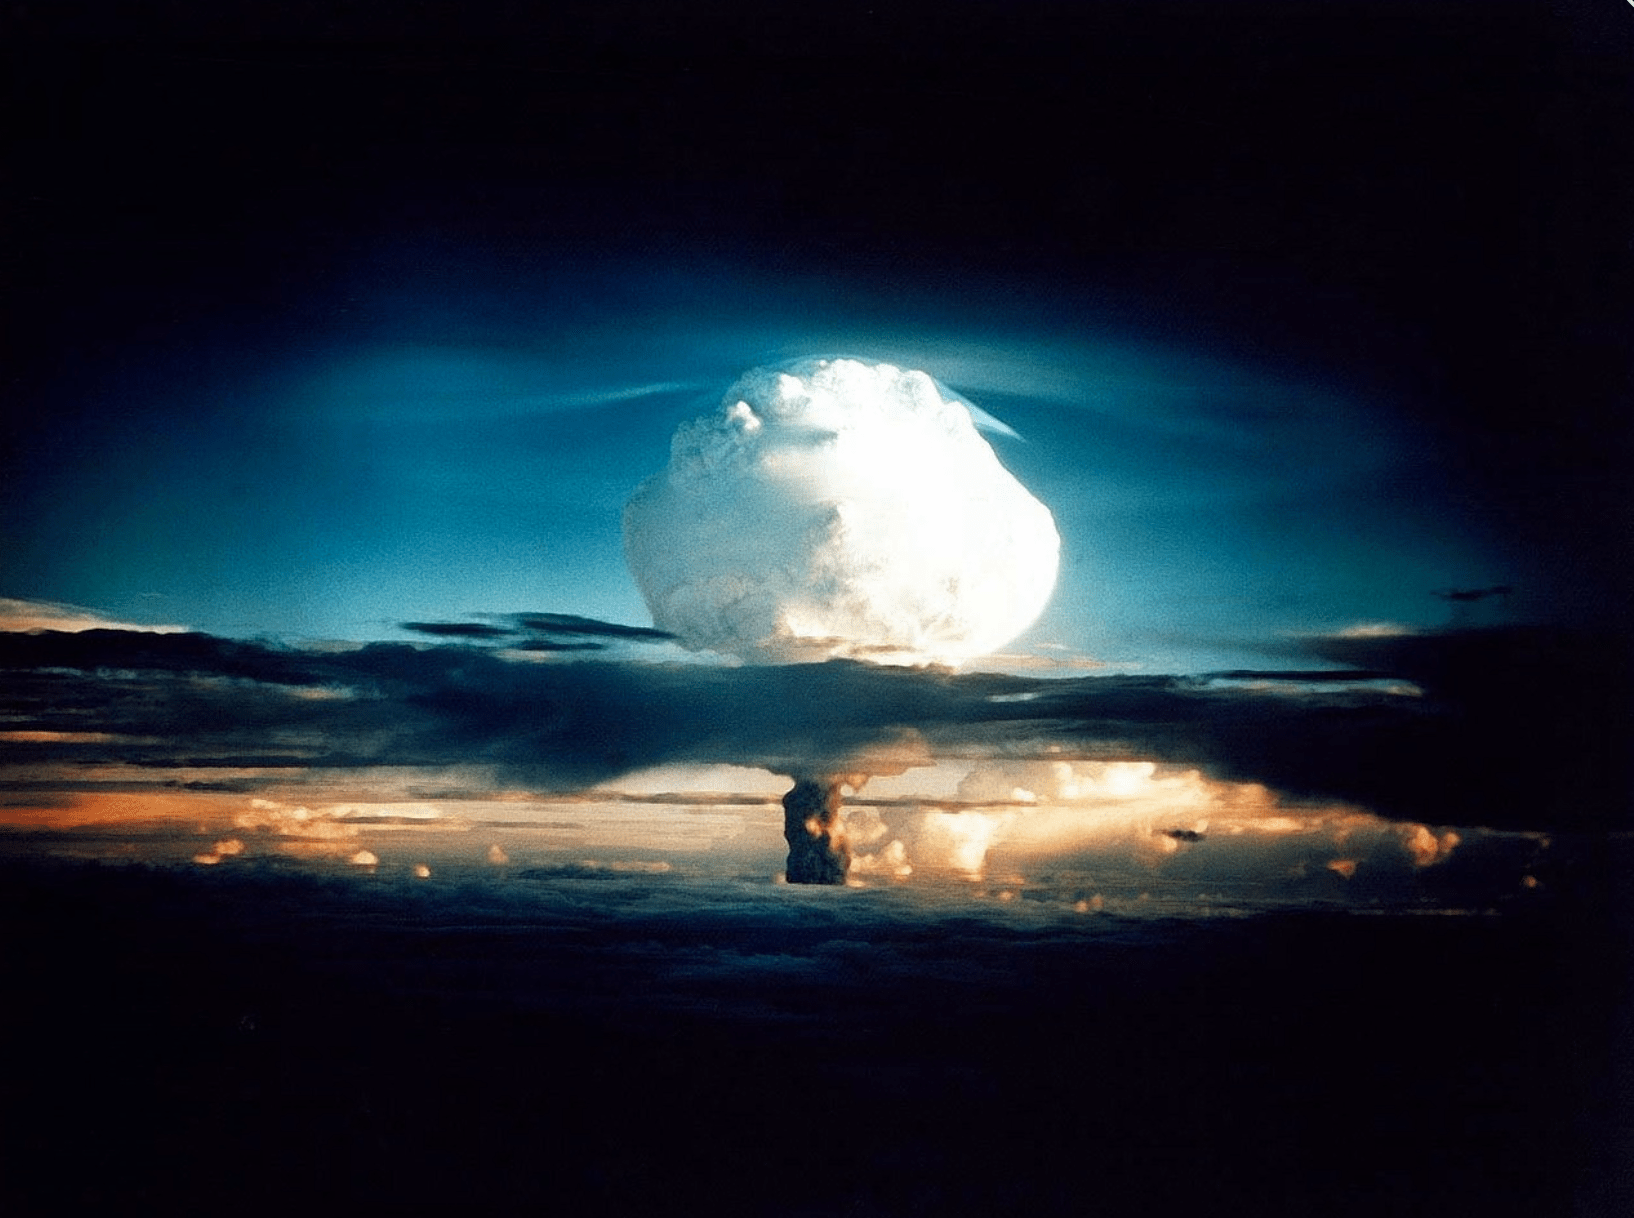 Report: Pandemic Futures and Nuclear Weapon Risks